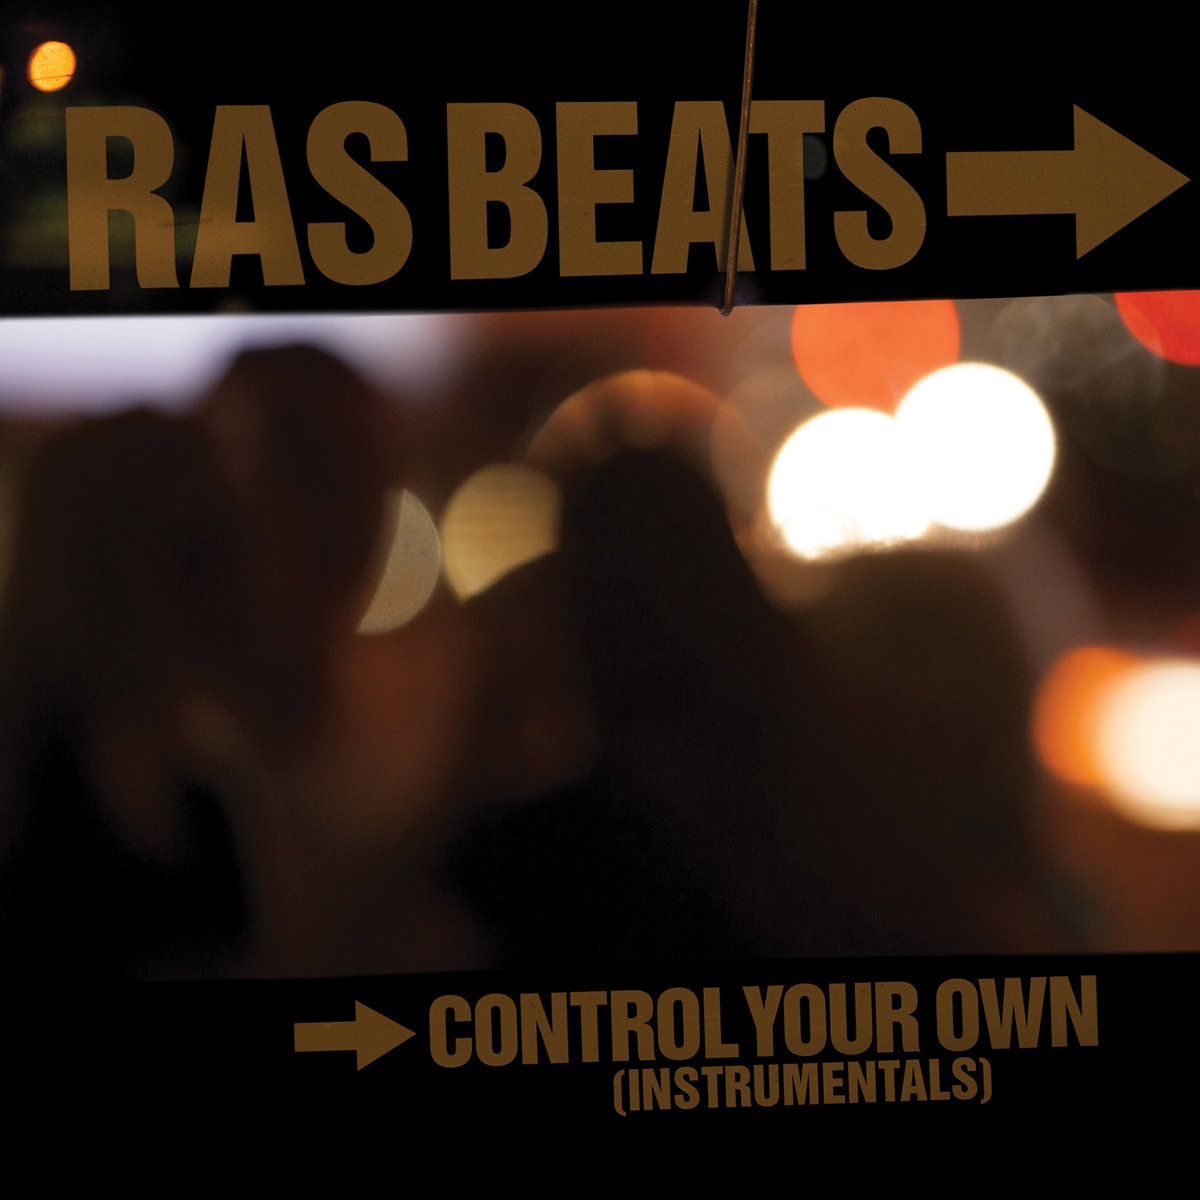 Control your own instrumentals ras beats by ras beats malvernweather Images